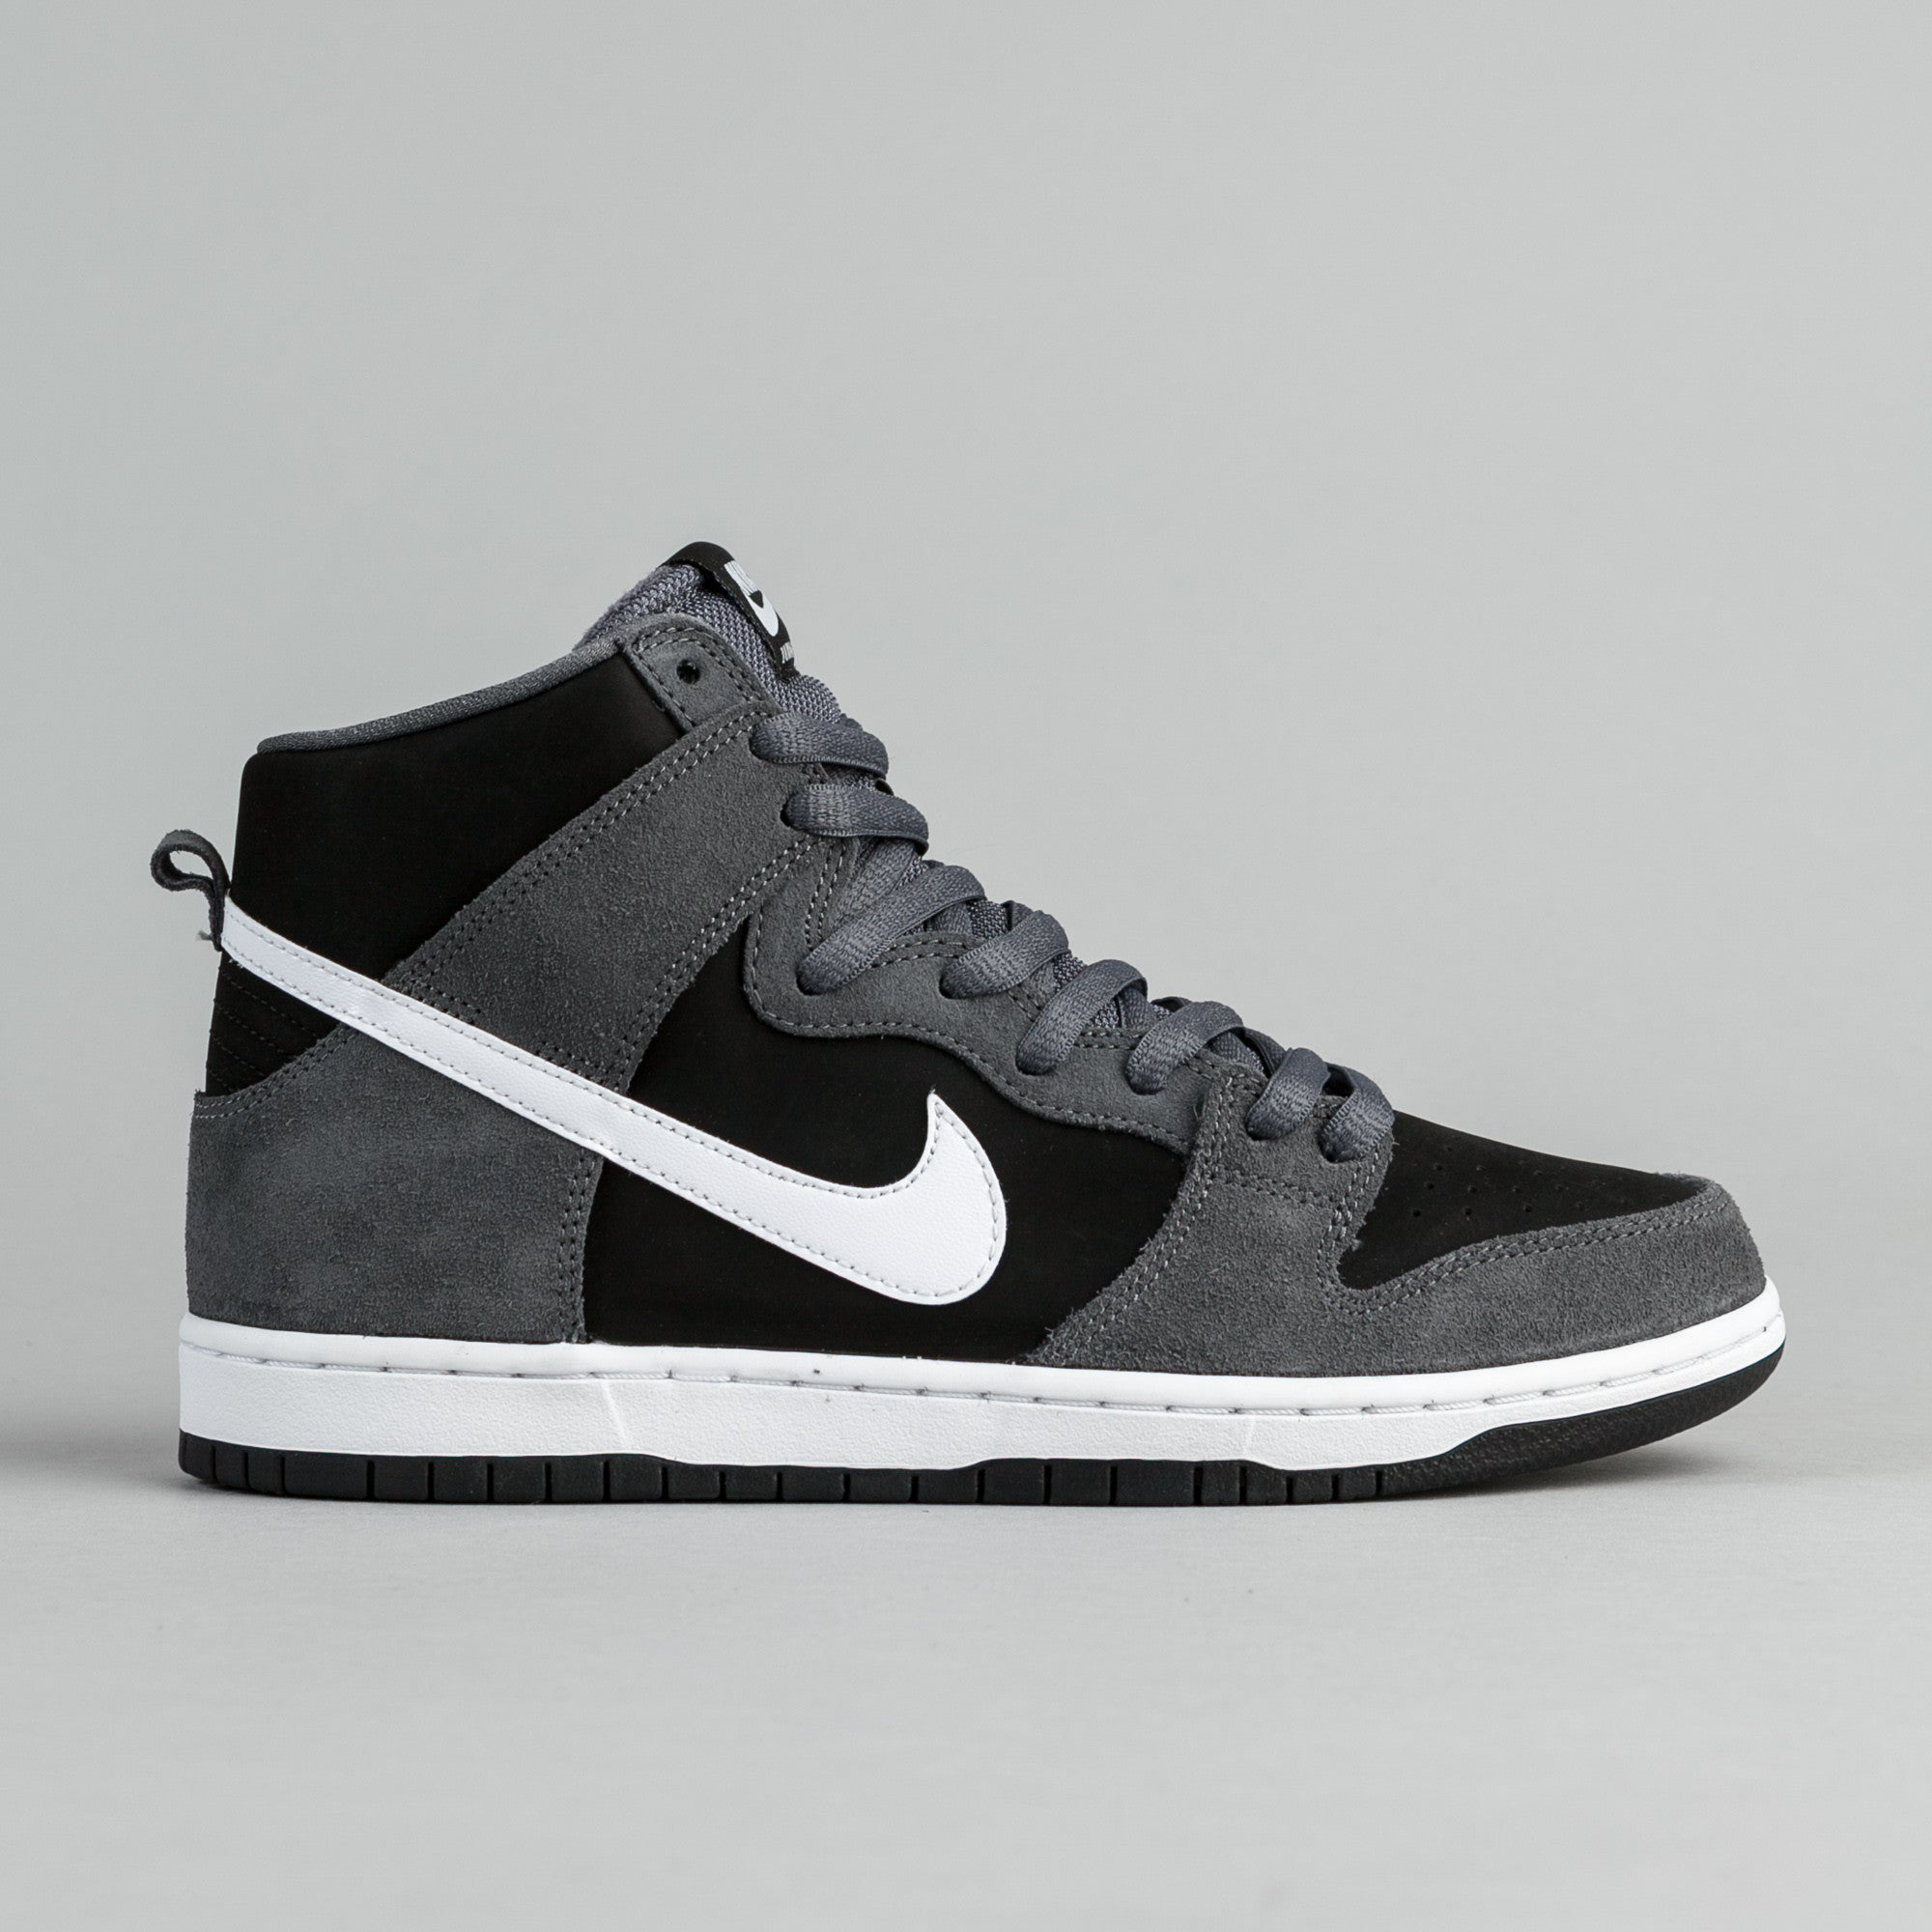 Nike SB Dunk High Pro Shoes - Dark Grey   White - Black - White ... eef3b6682916